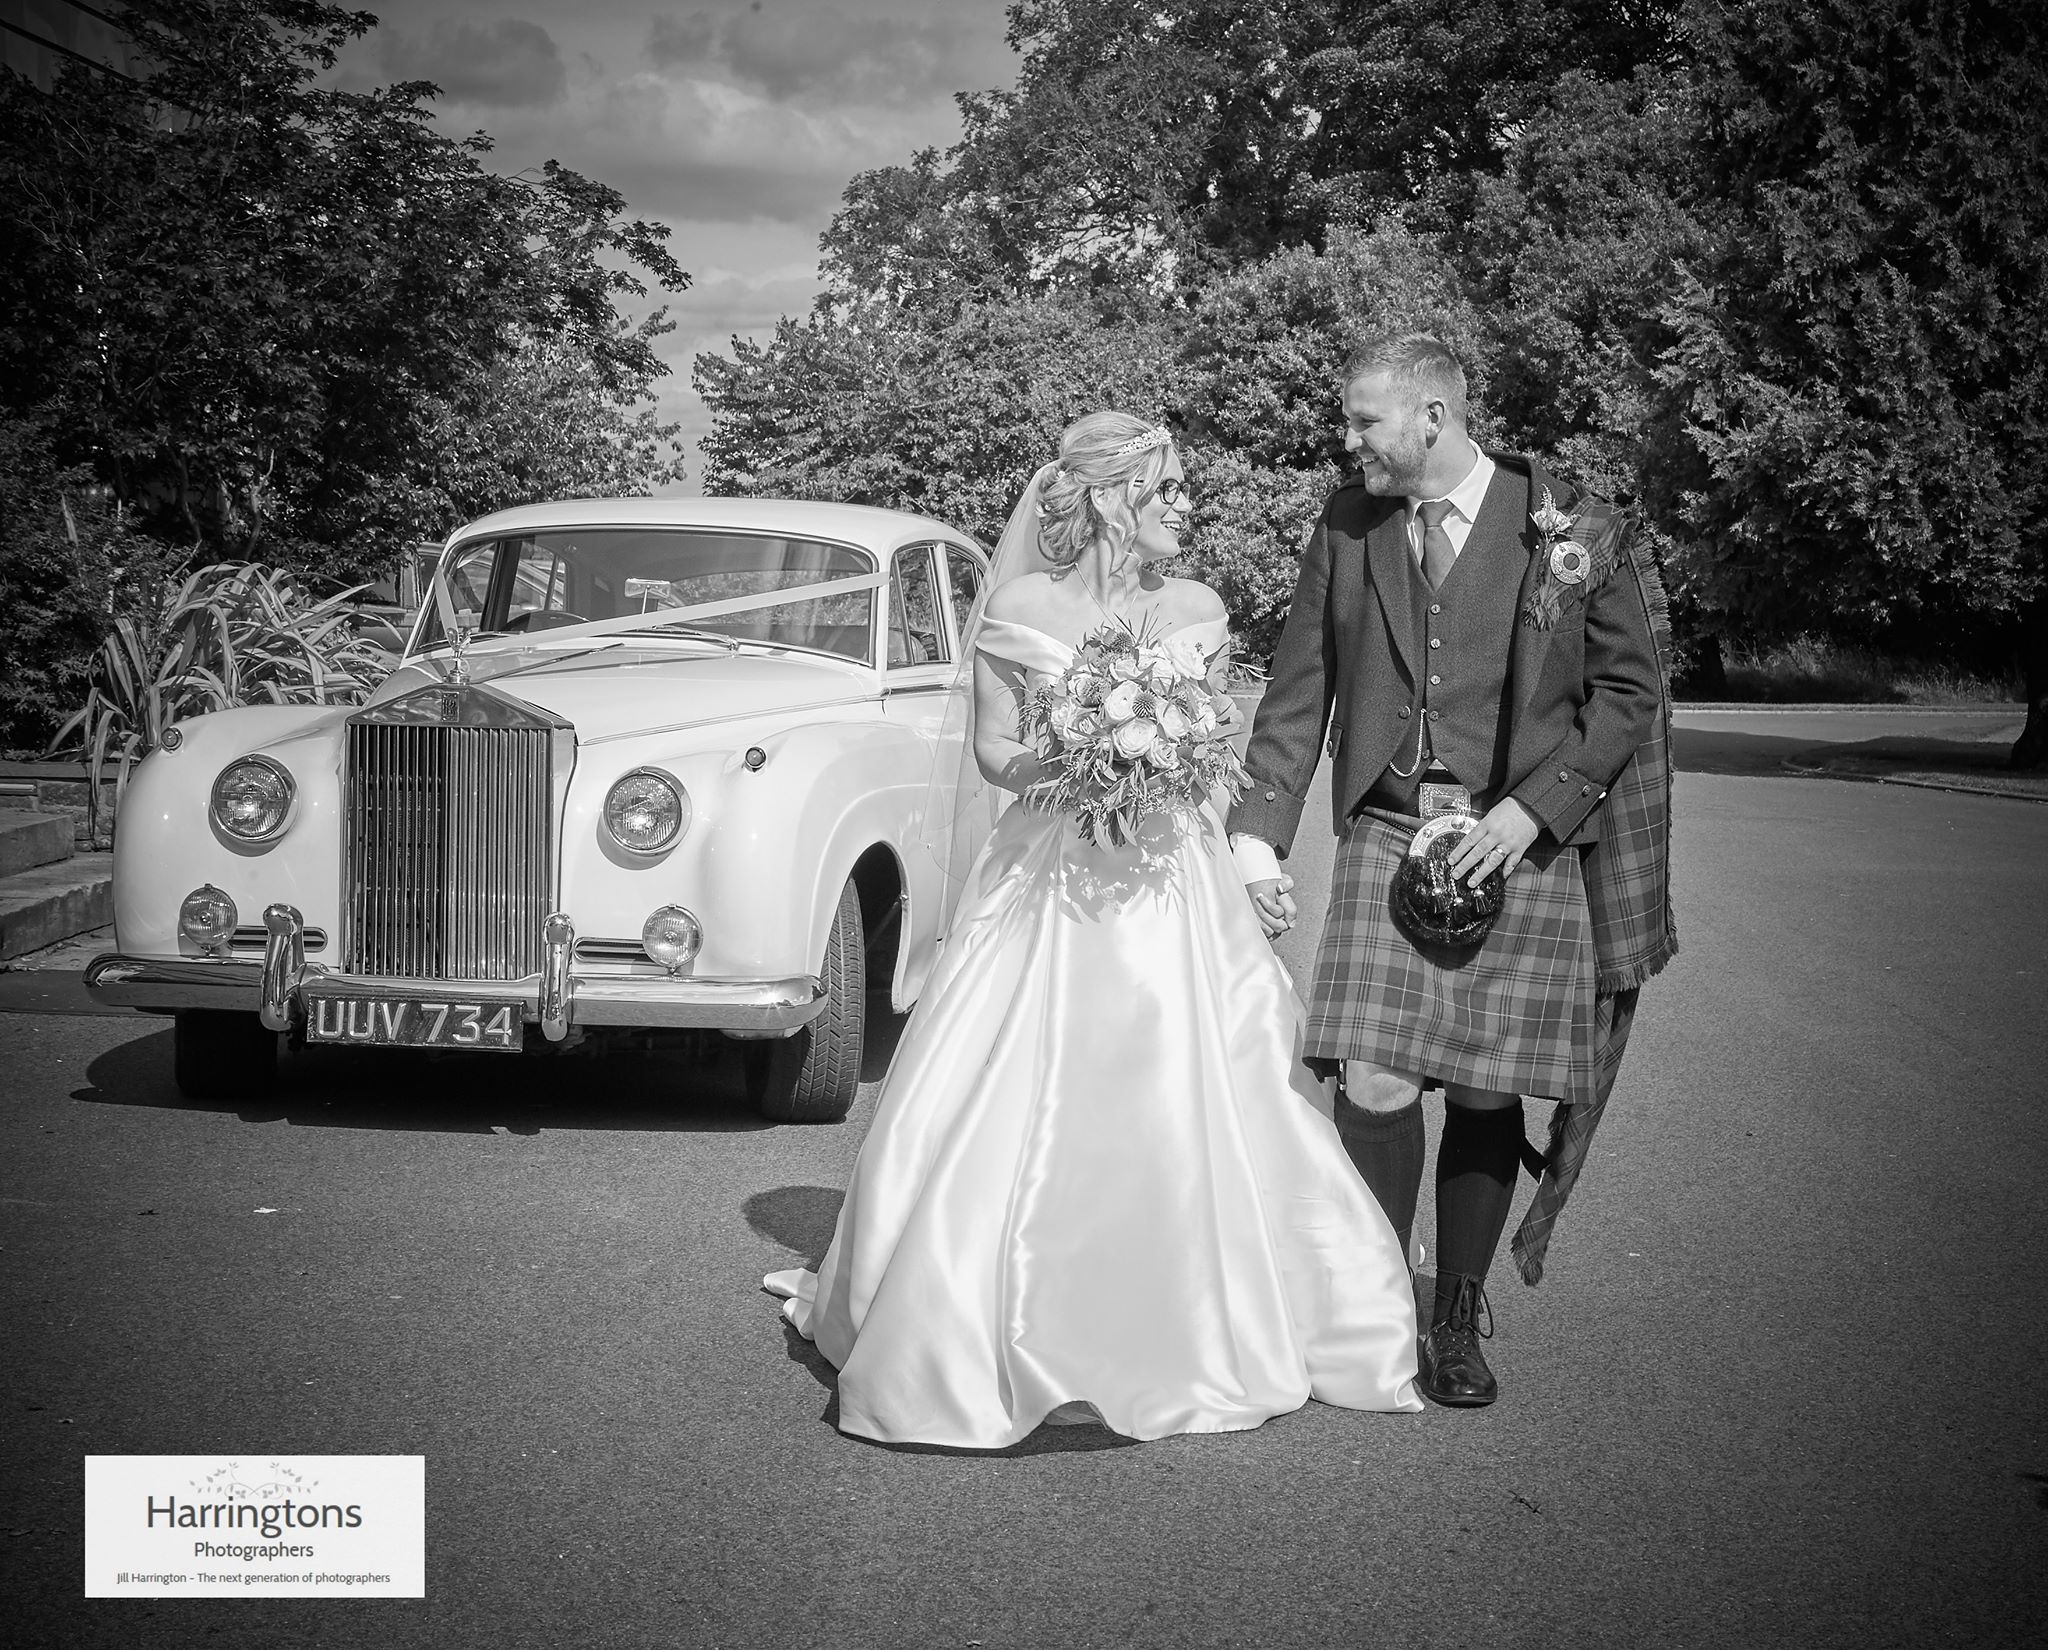 1958 Rolls Royce Cloud ( seats 4 passengers) Wedding Car Hire